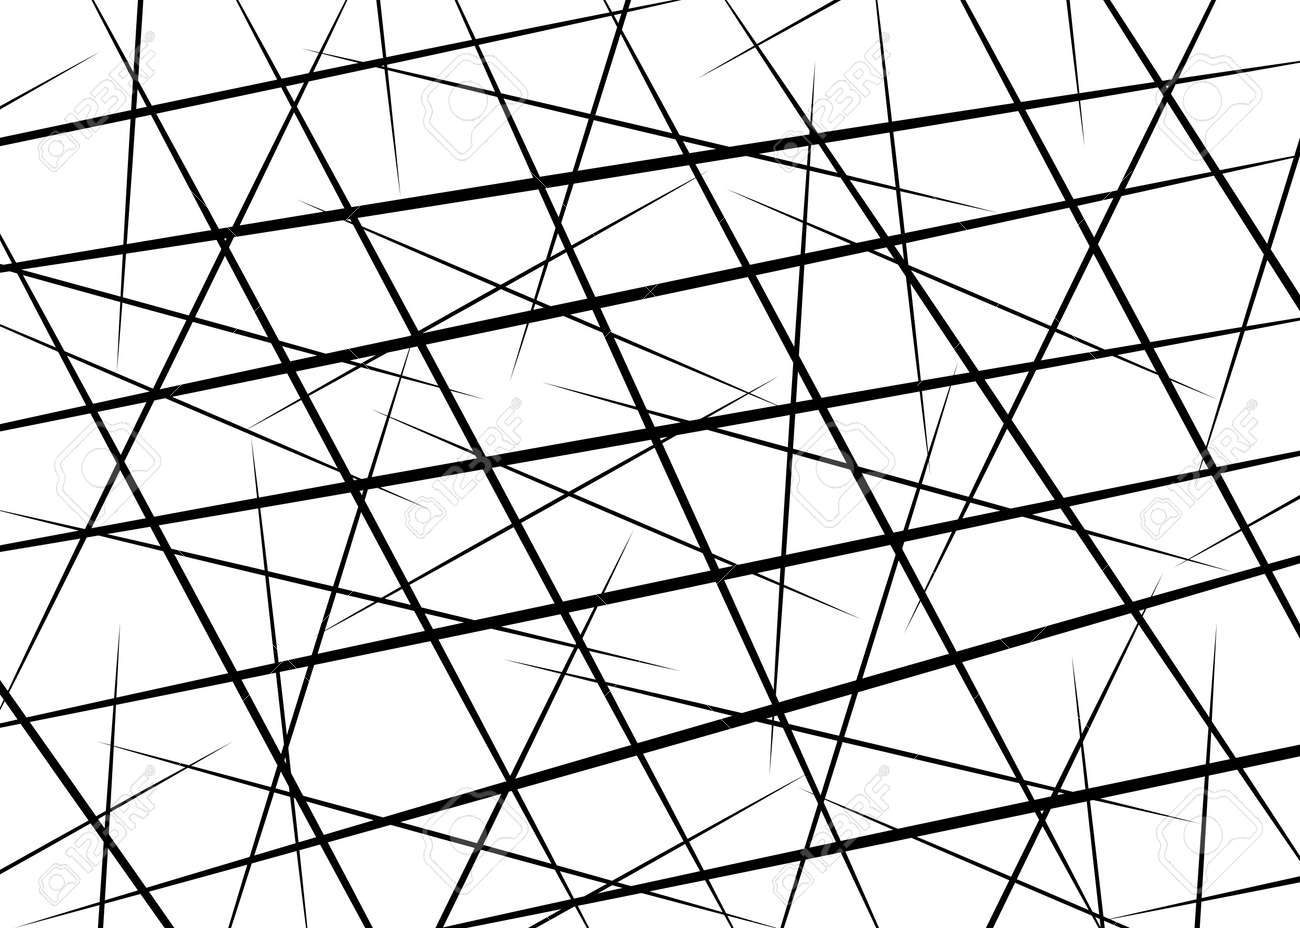 Random Chaotic Lines Scattered Lines Random Chaotic Lines Asymmetrical